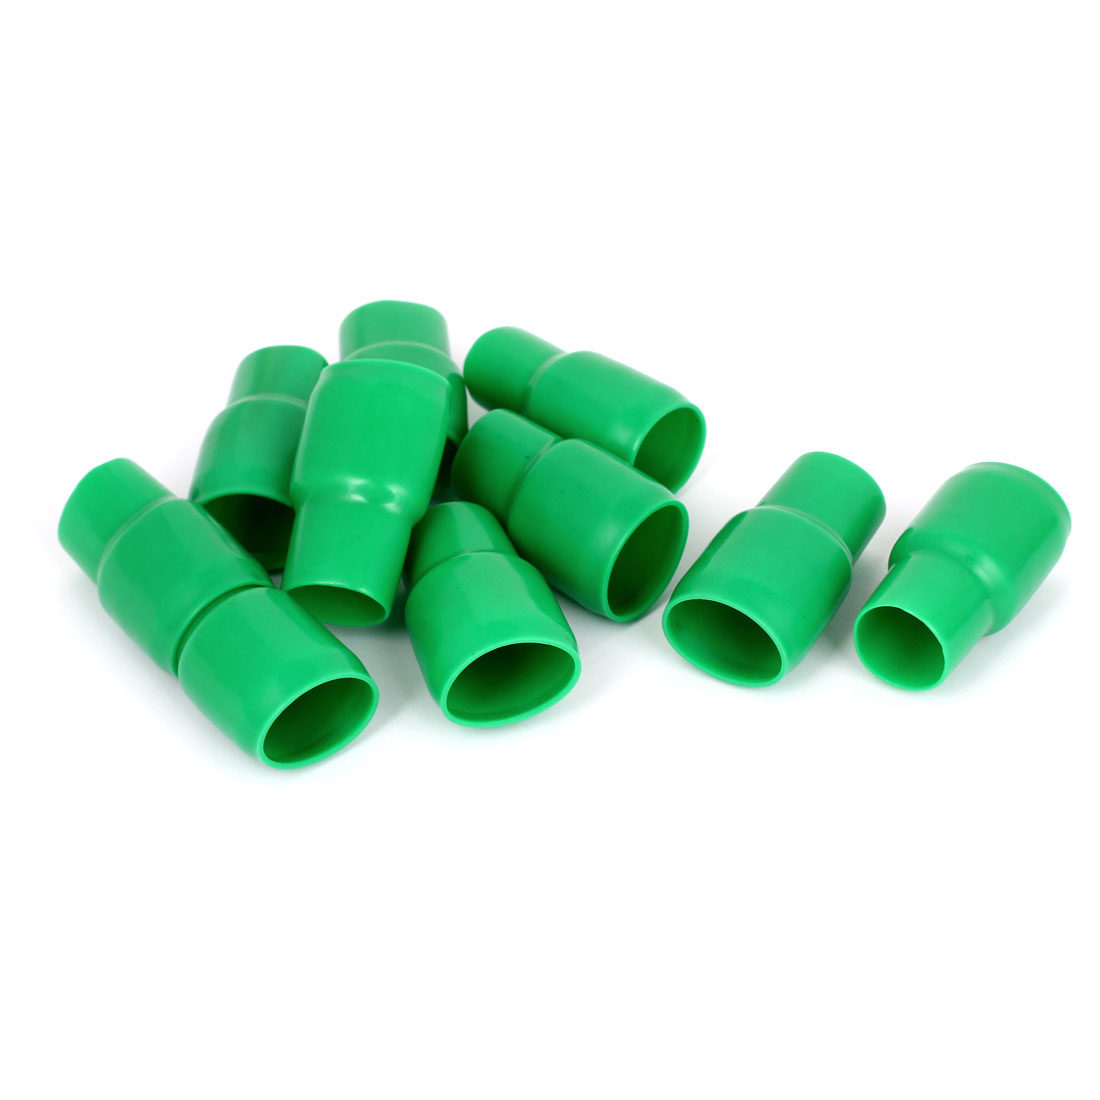 10pcs Green PVC 200mm2 Wire Cord Lead Terminal End Protect Insulated Sleeve Cover Caps